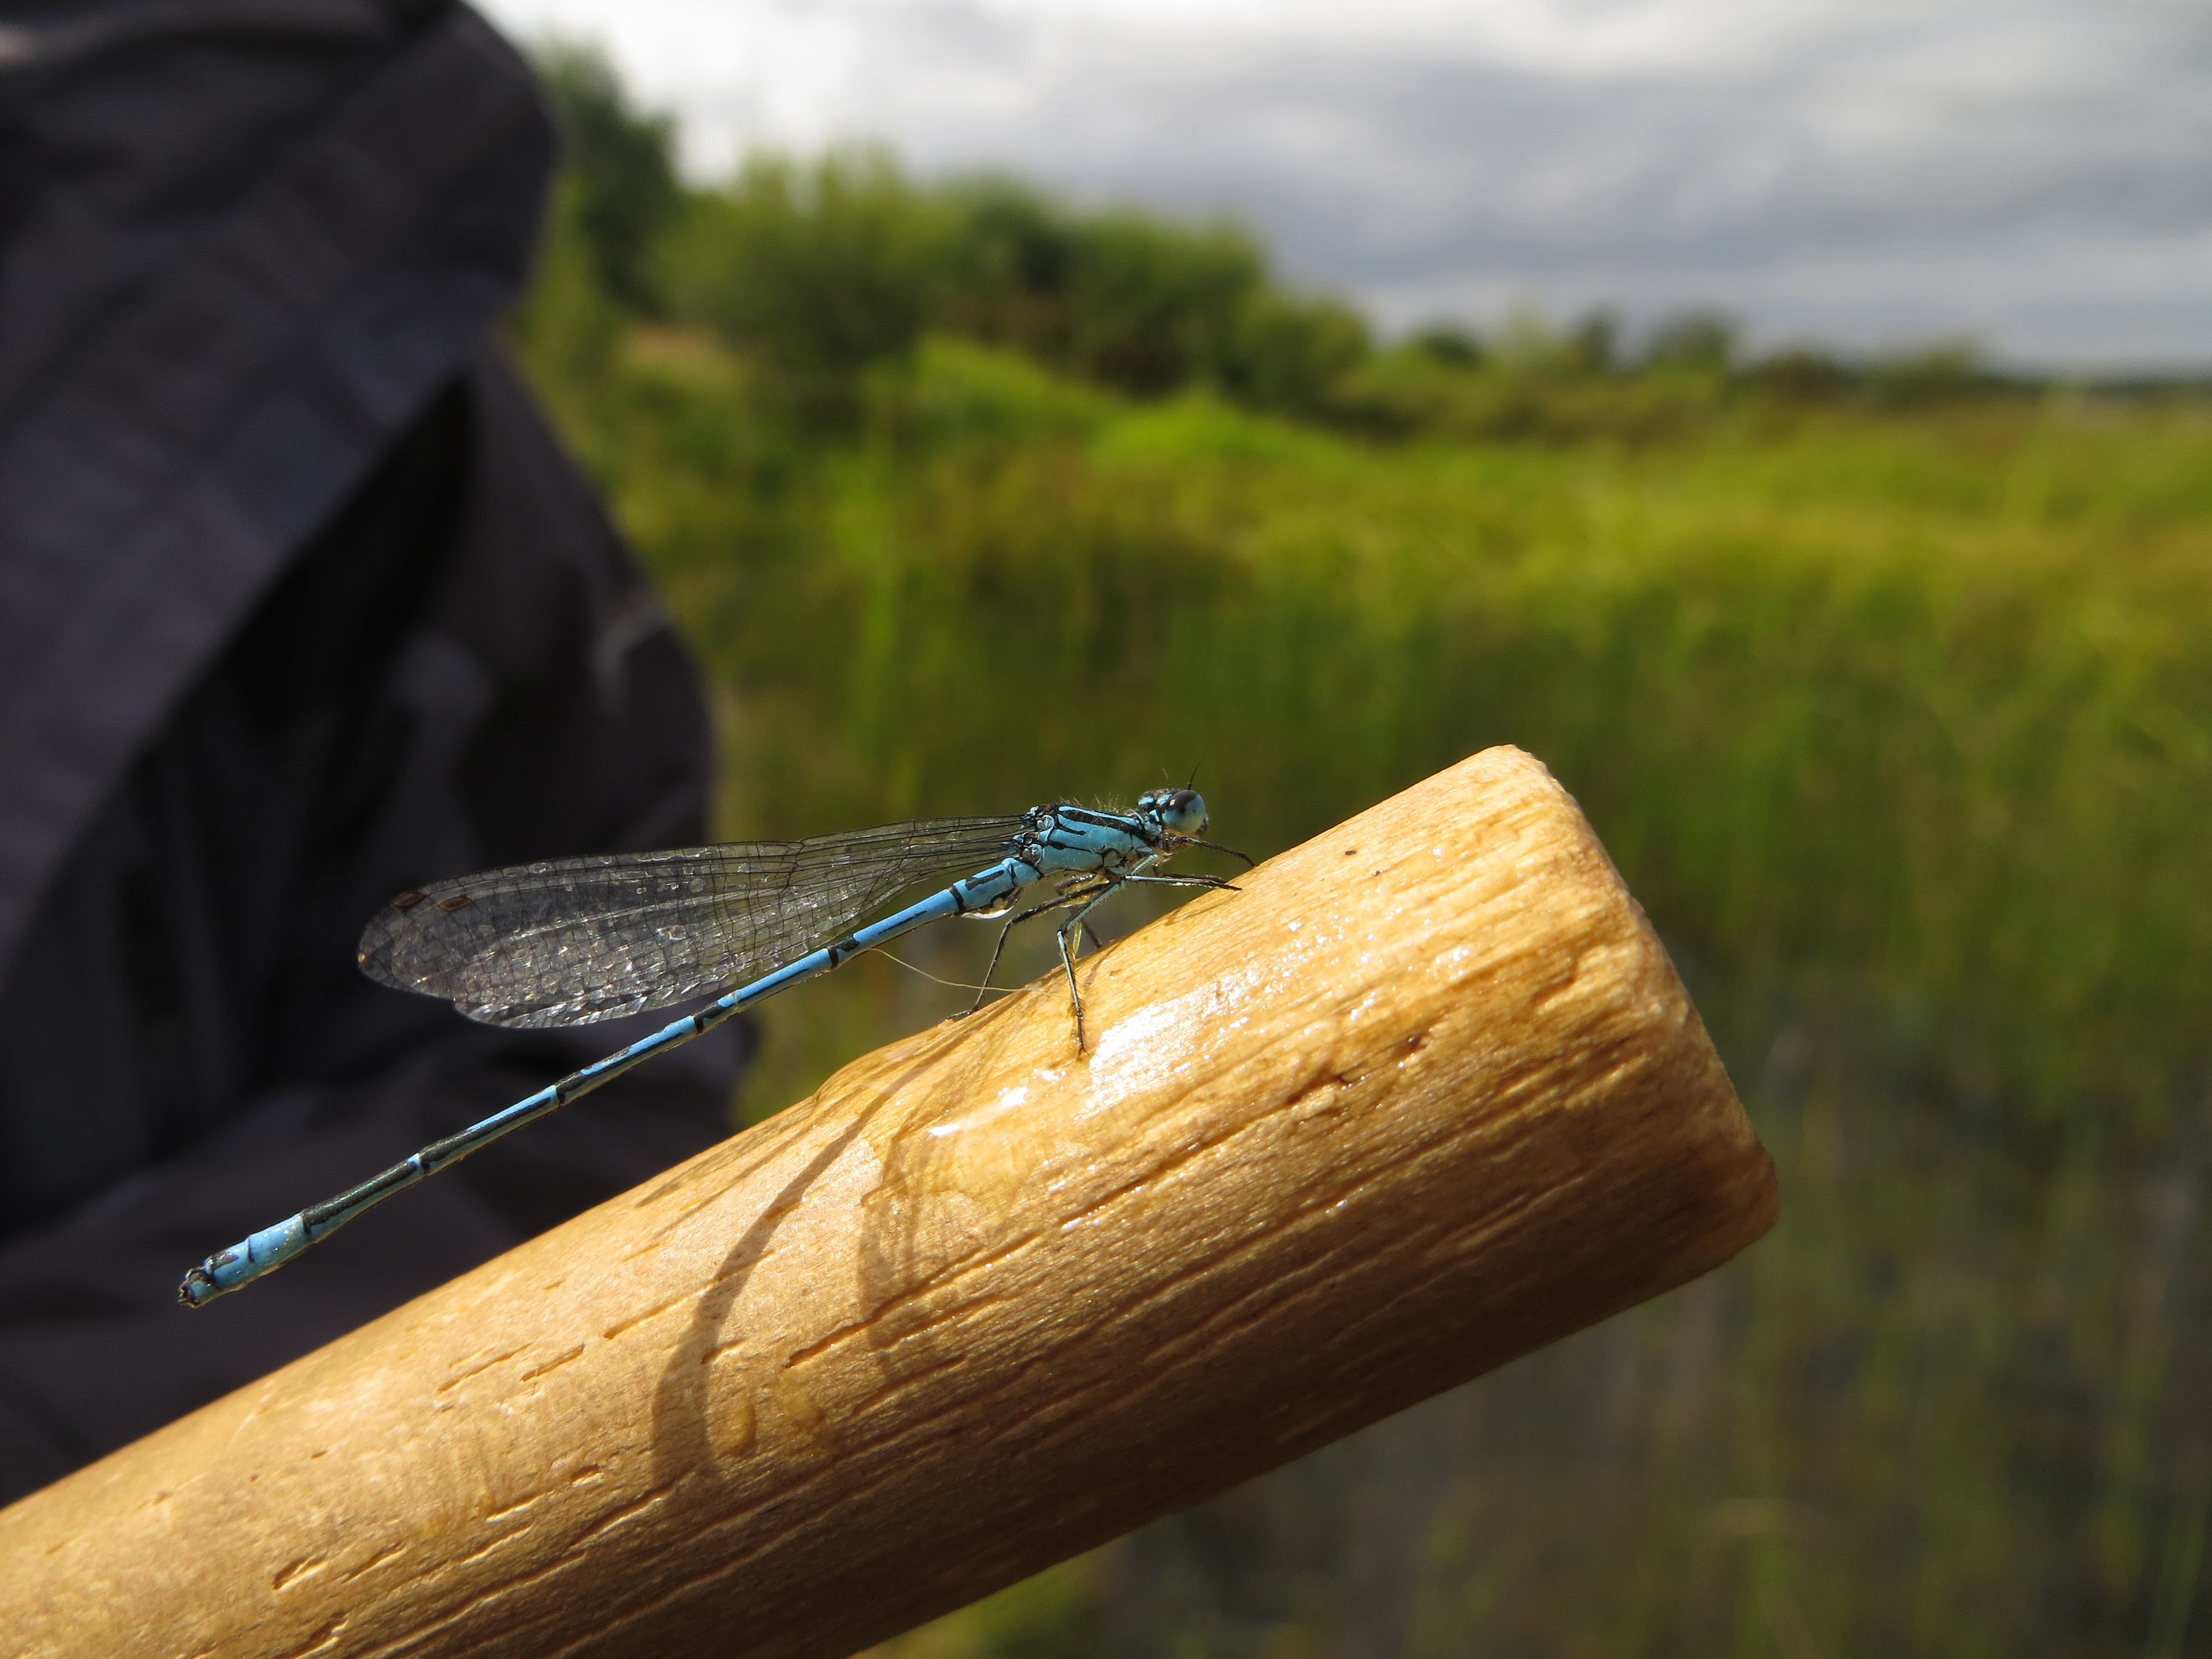 Have you seen any Dragonflies?